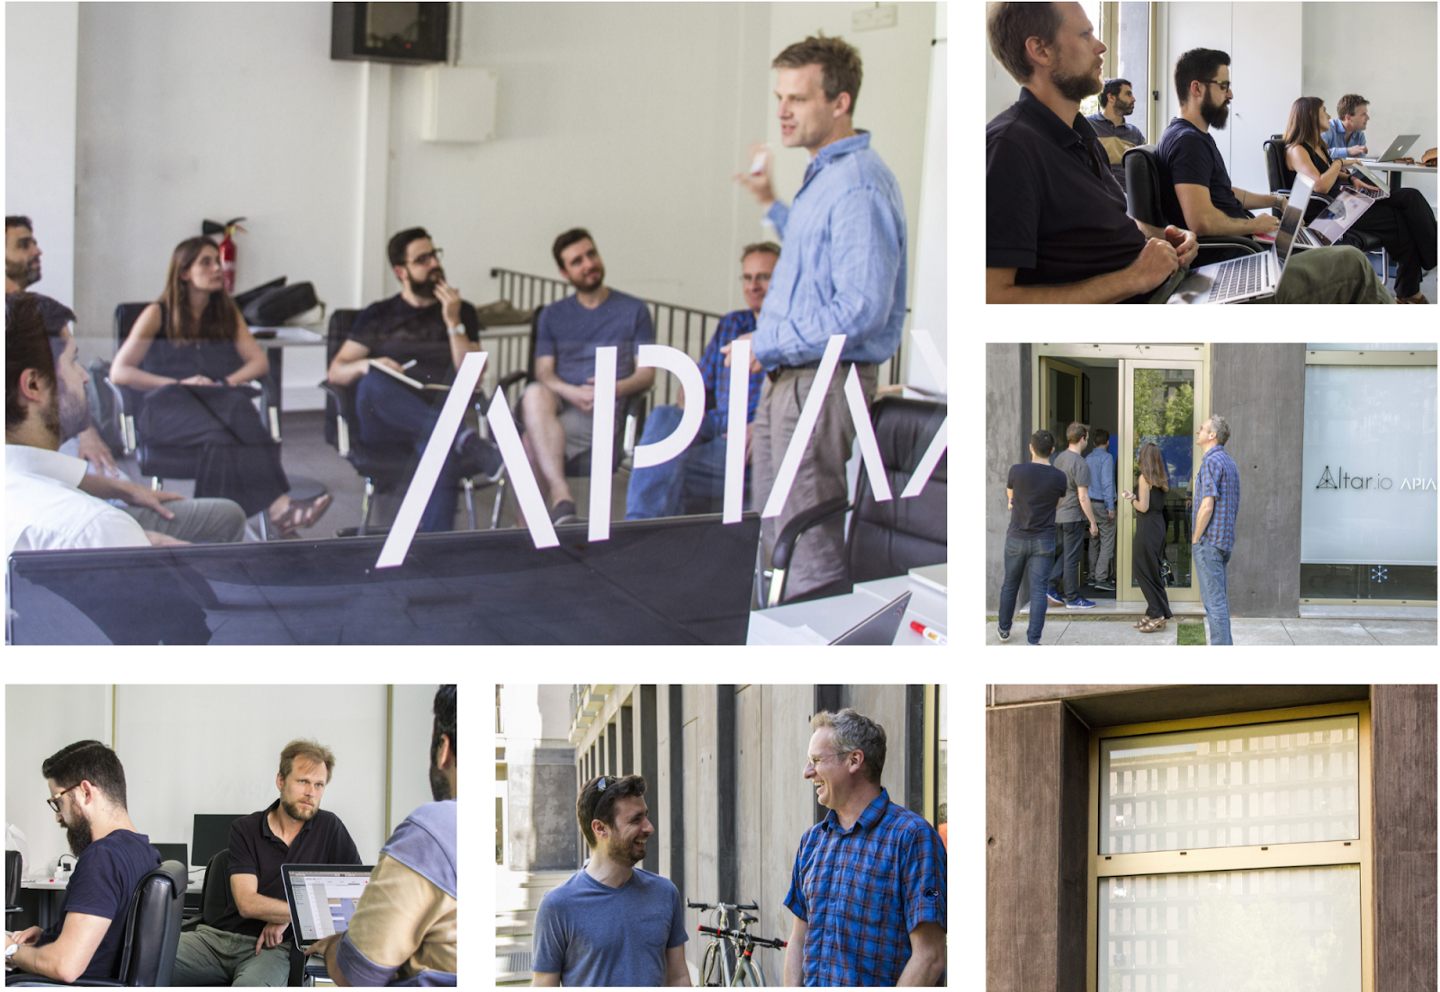 Apiax build a startup in Lisbon with Altar.io